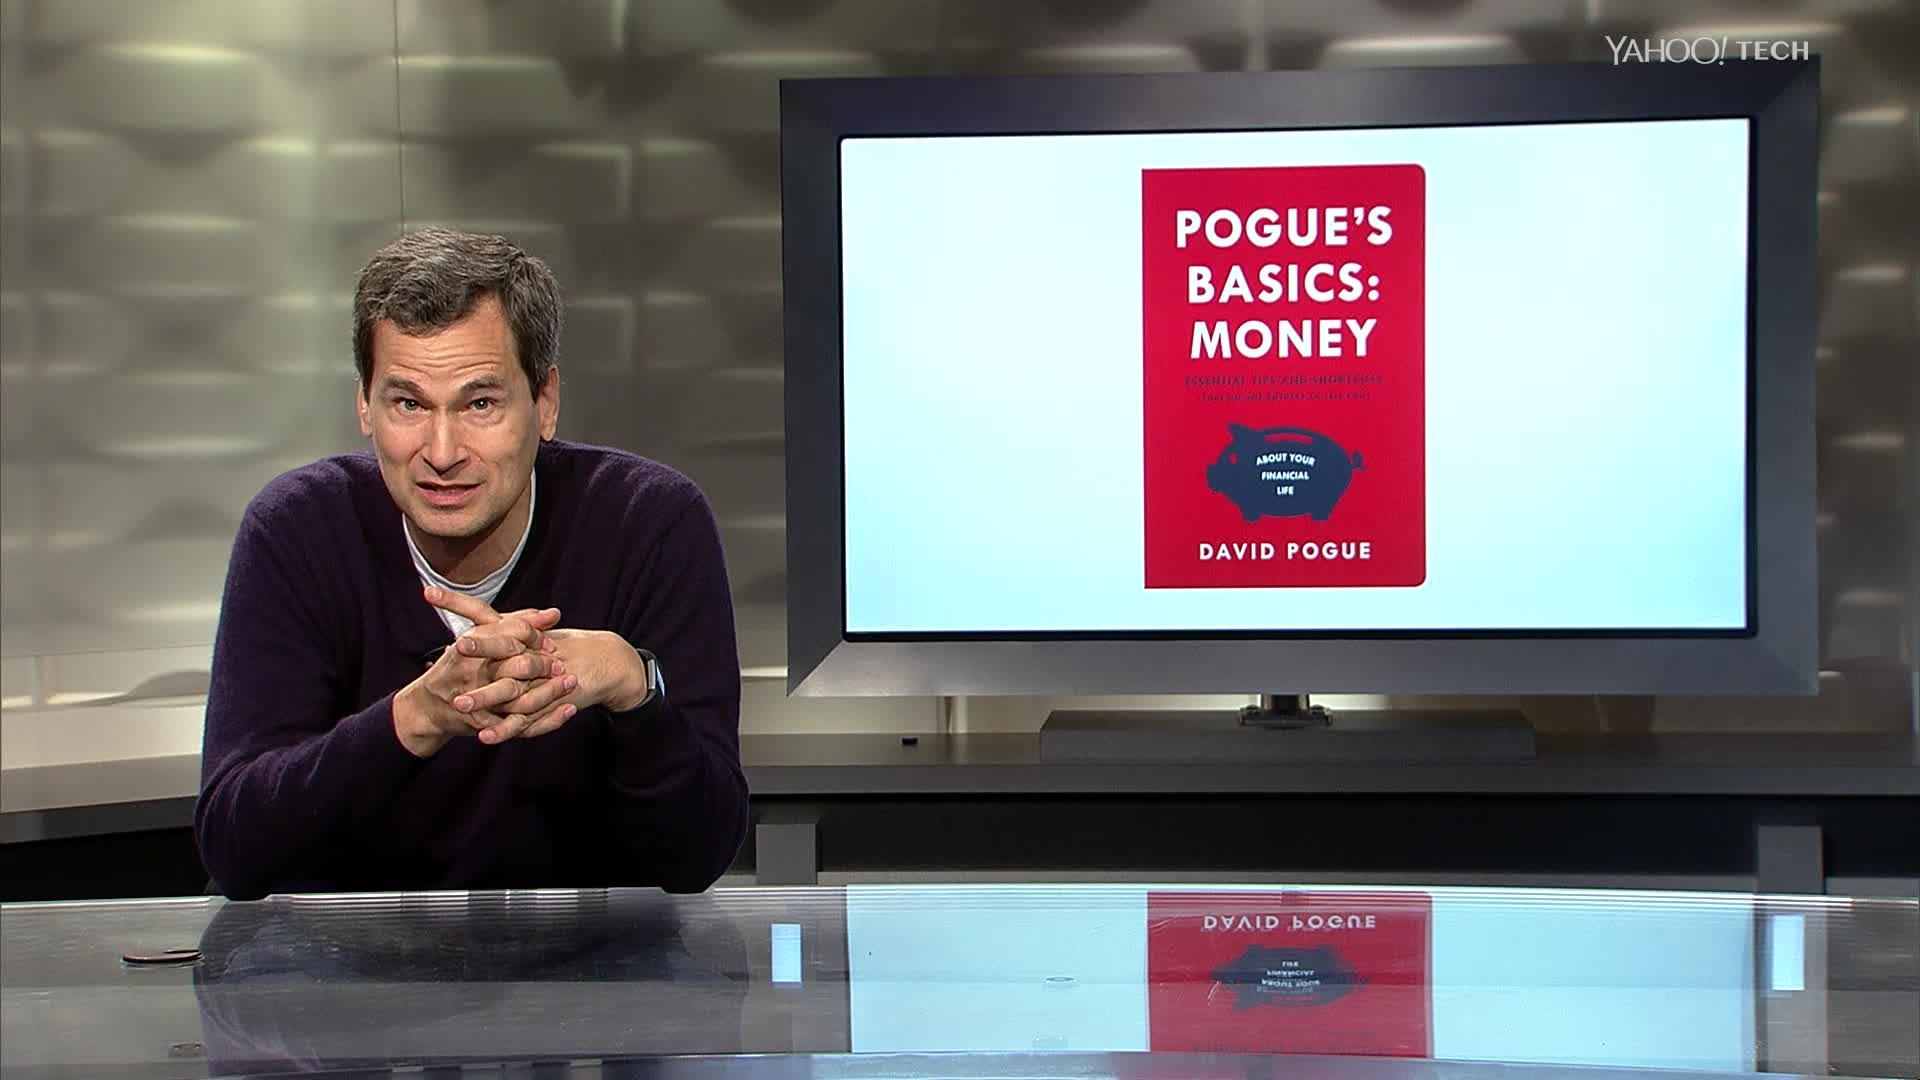 Pogue's Basics: Money - Buy your own cable box, save hundreds